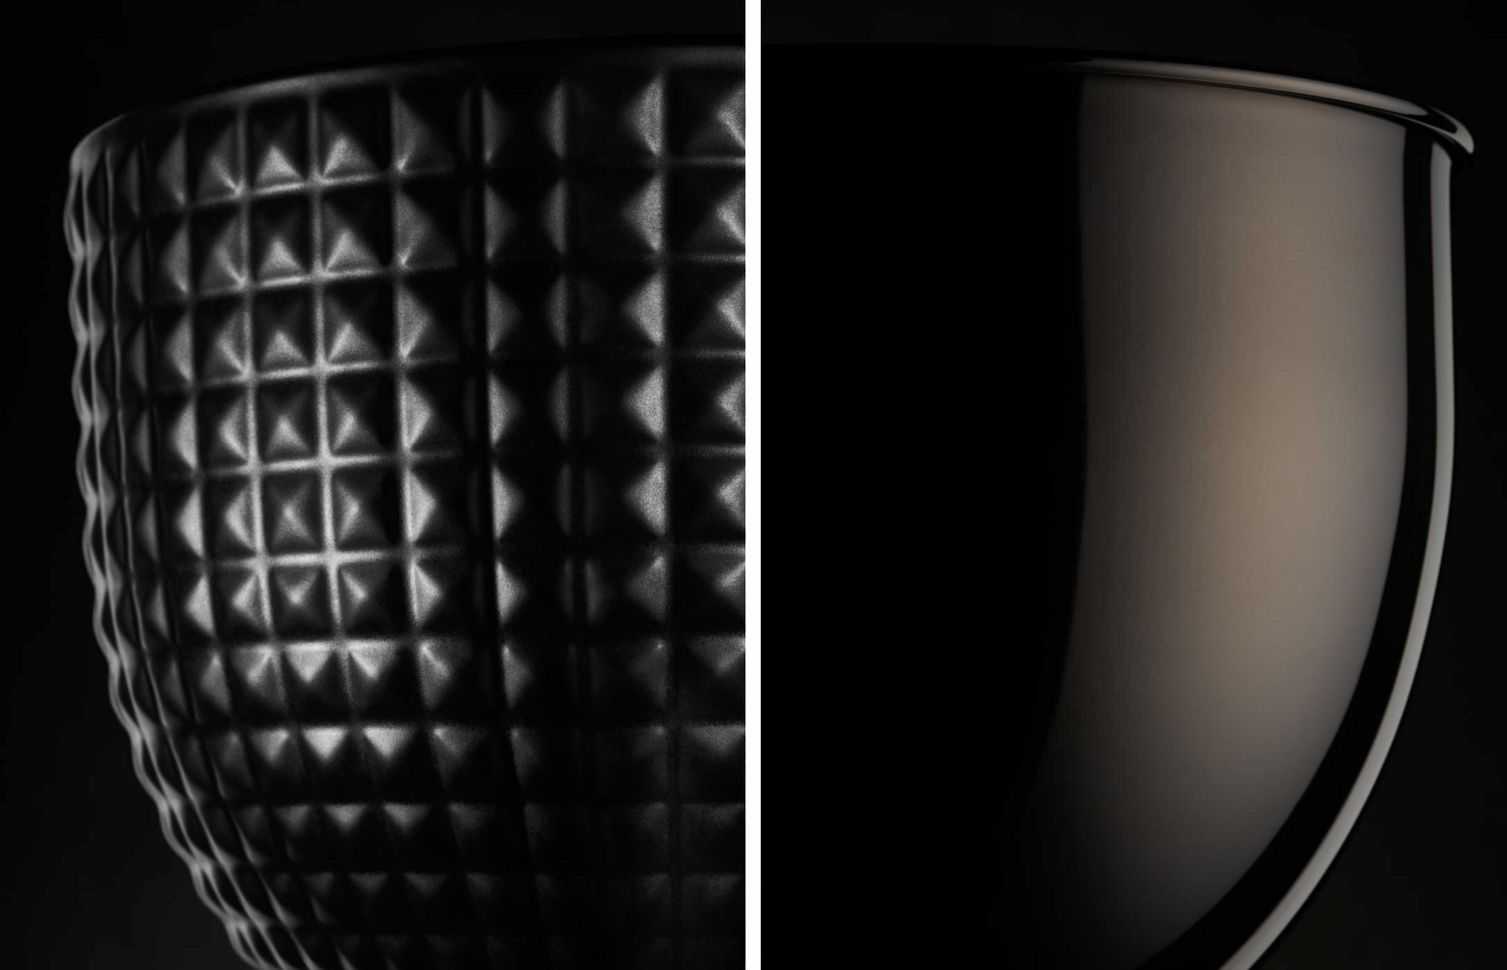 A closeup of both the black ceramic studded bowl and the black stainless steel bowl.